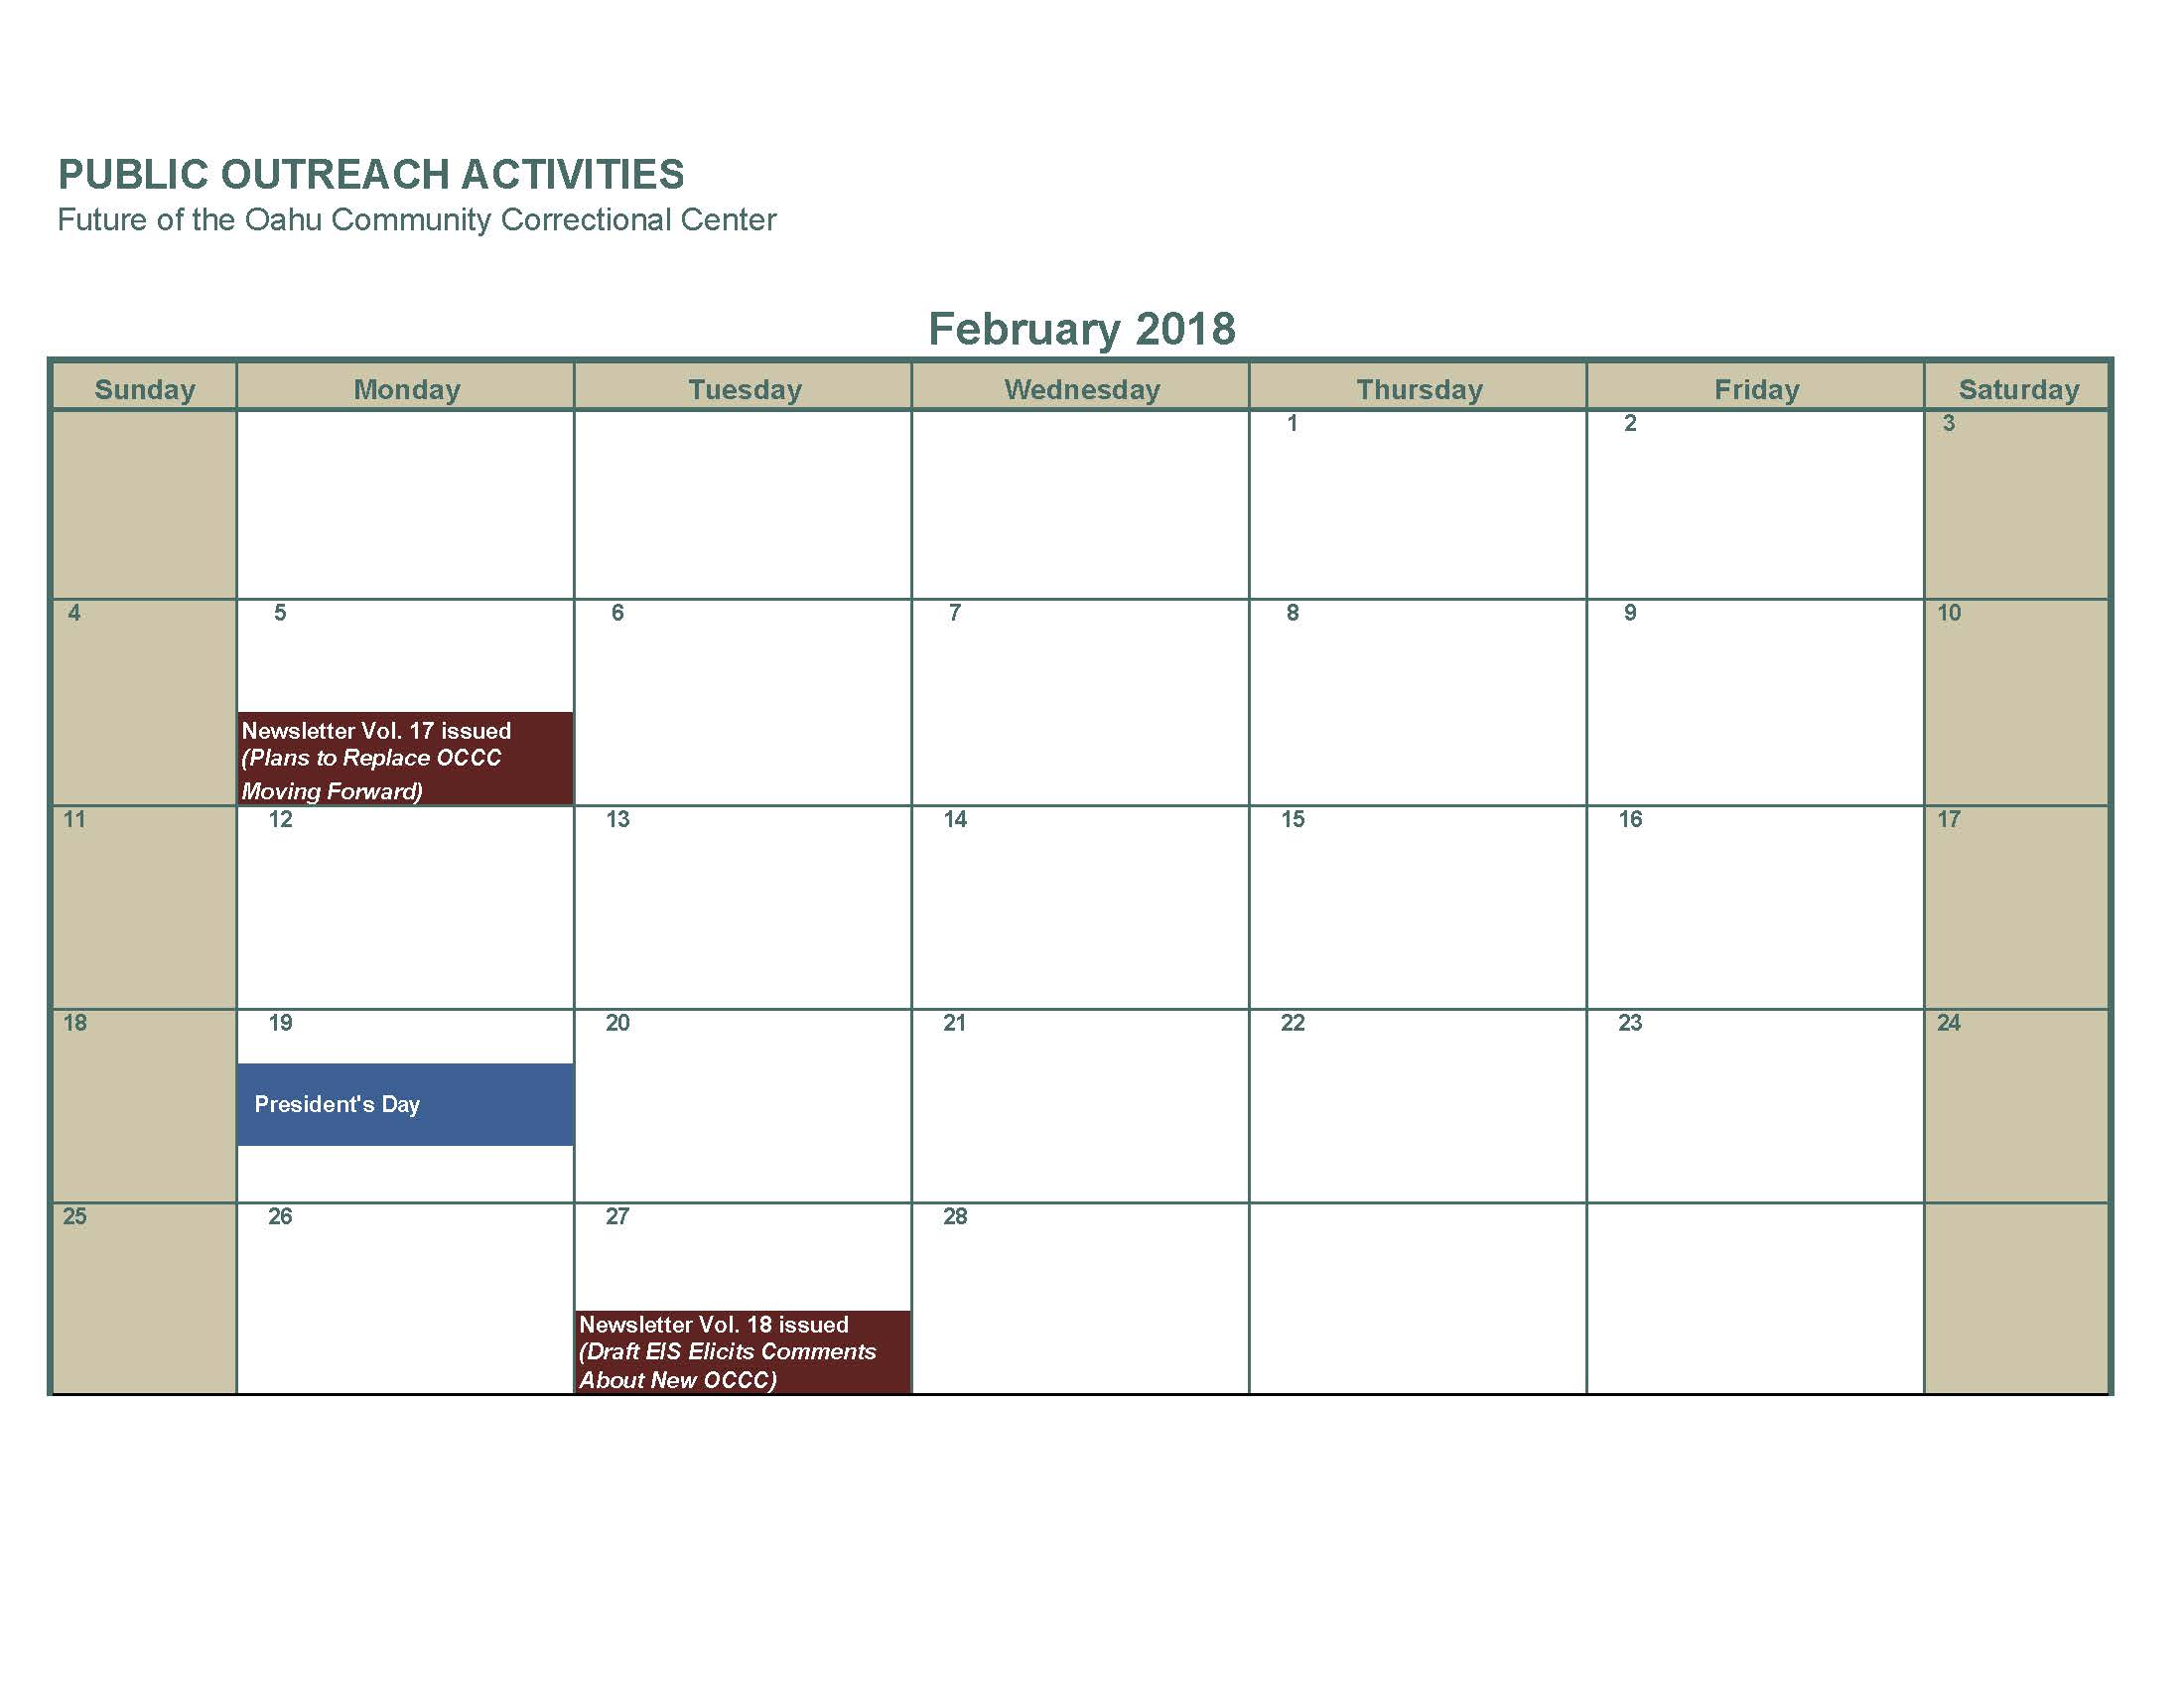 February 2019 Two activities